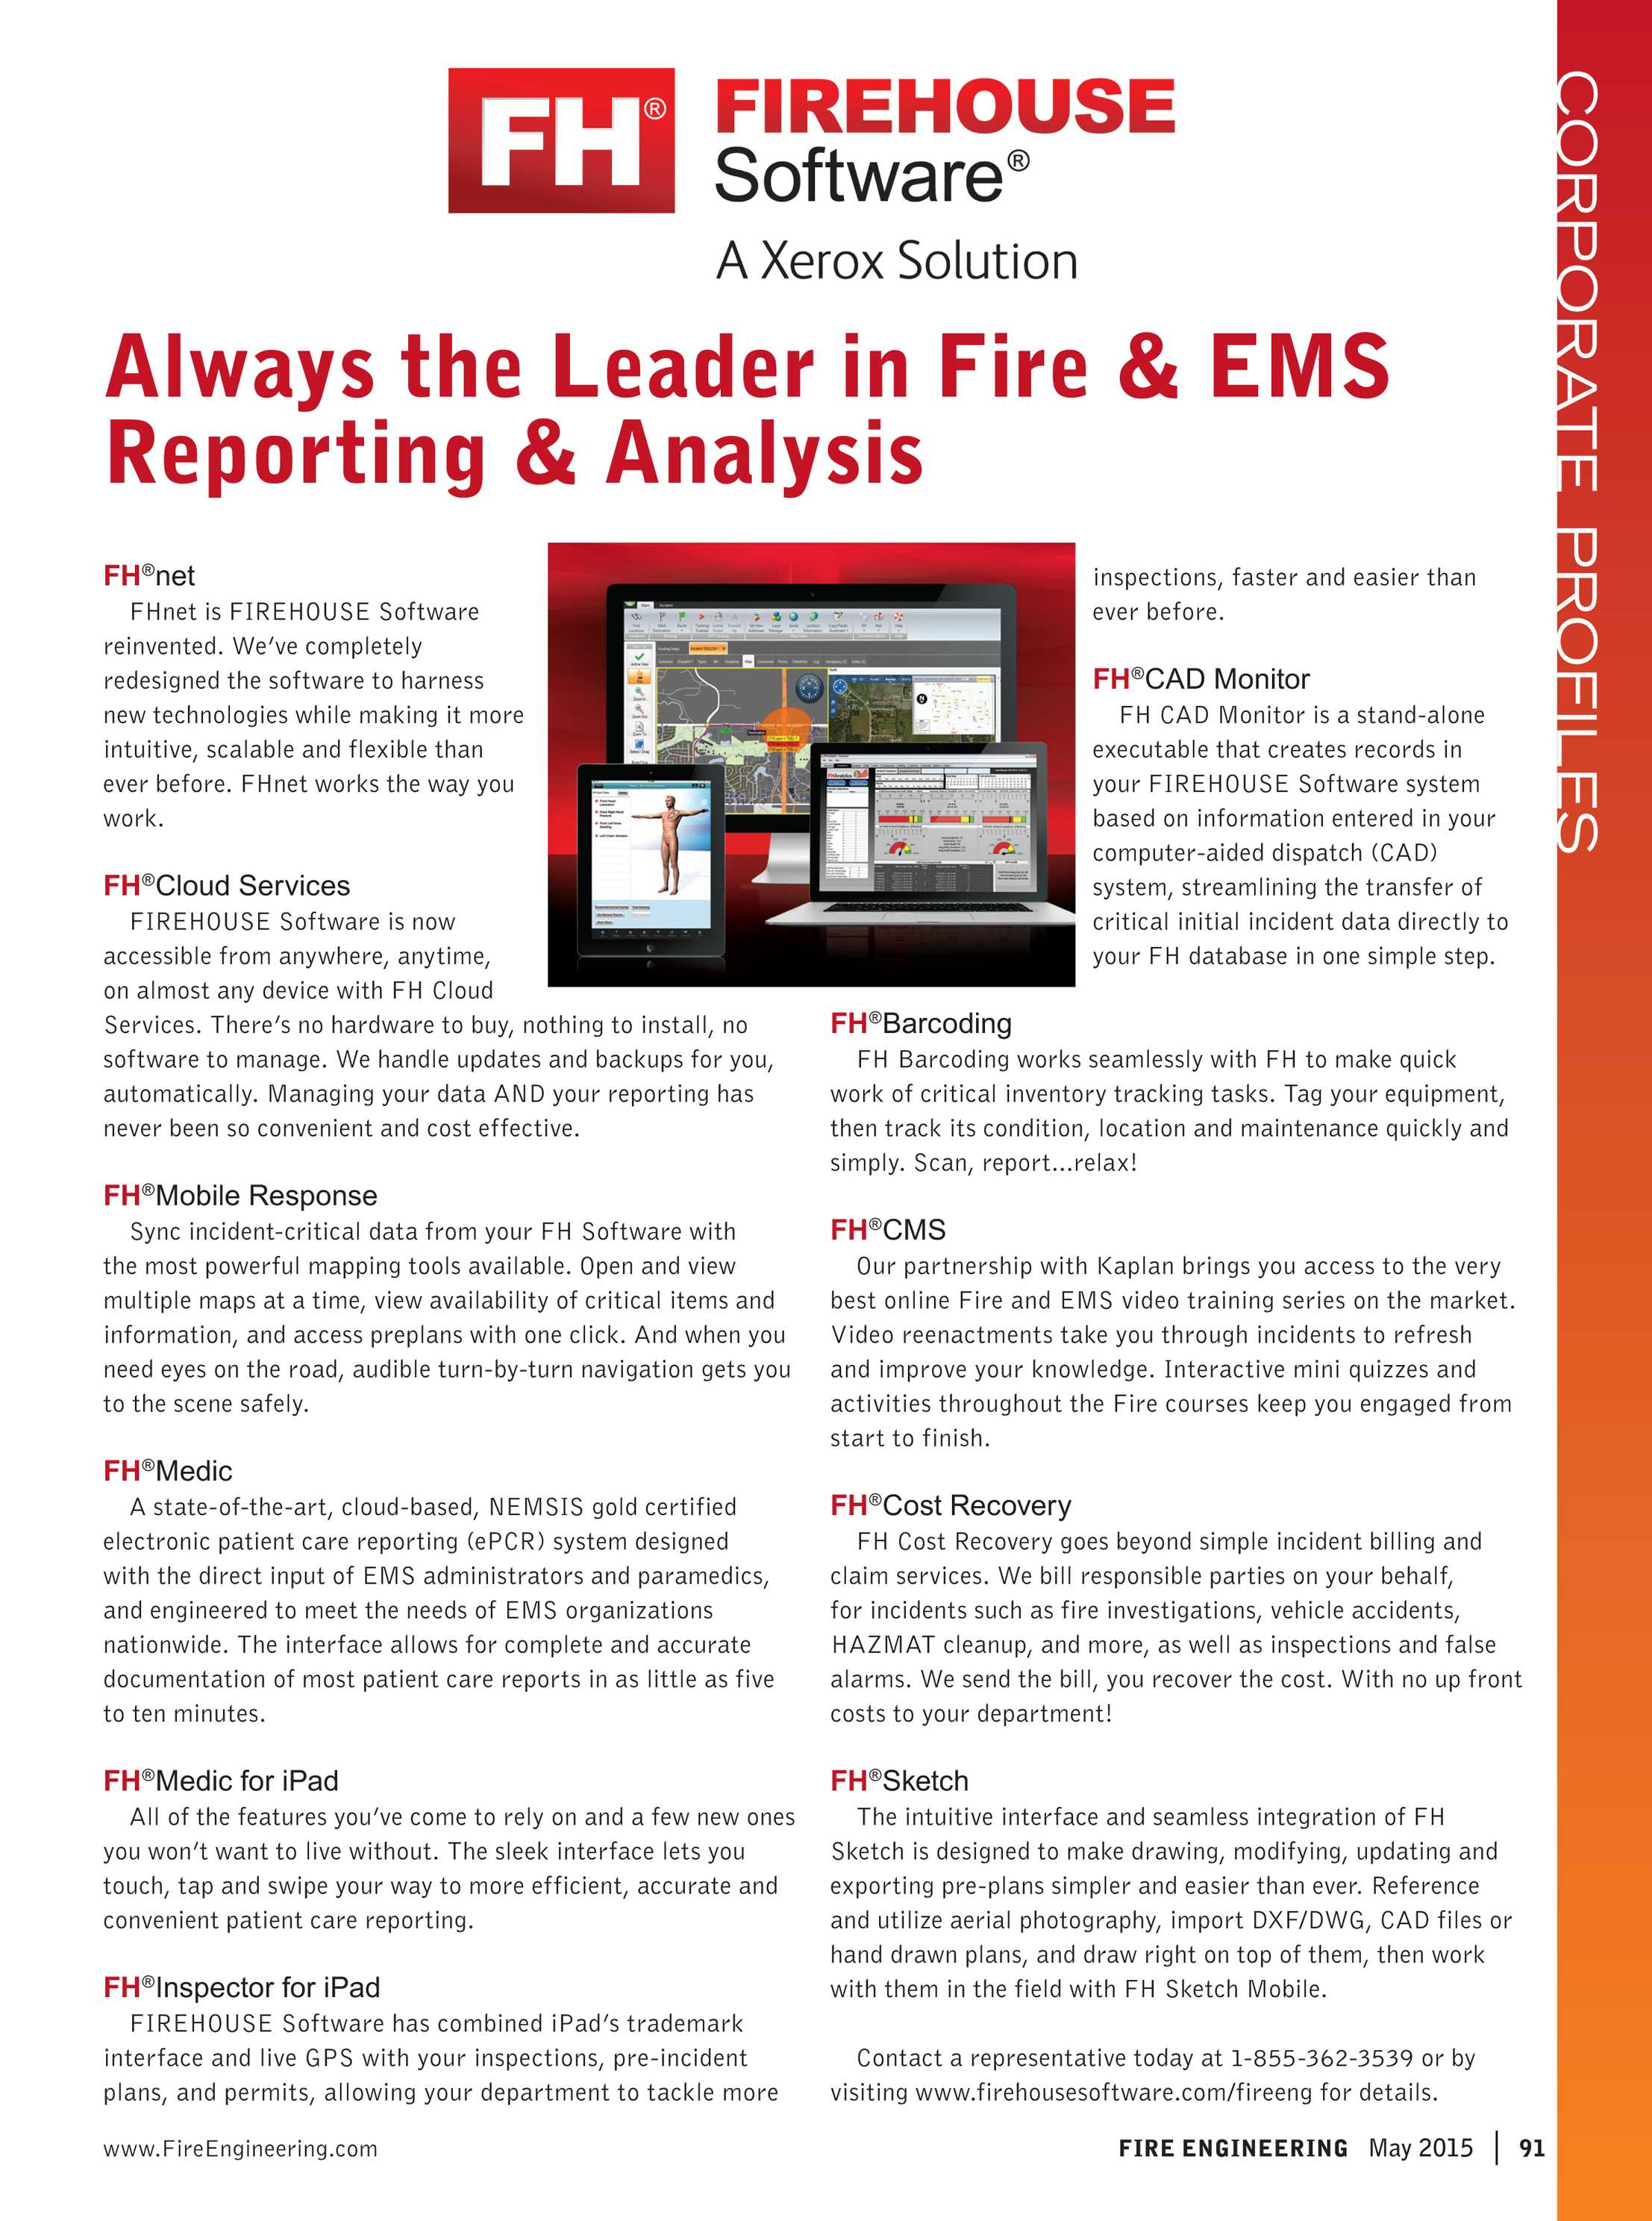 Fire Engineering - May 2015 - page 91